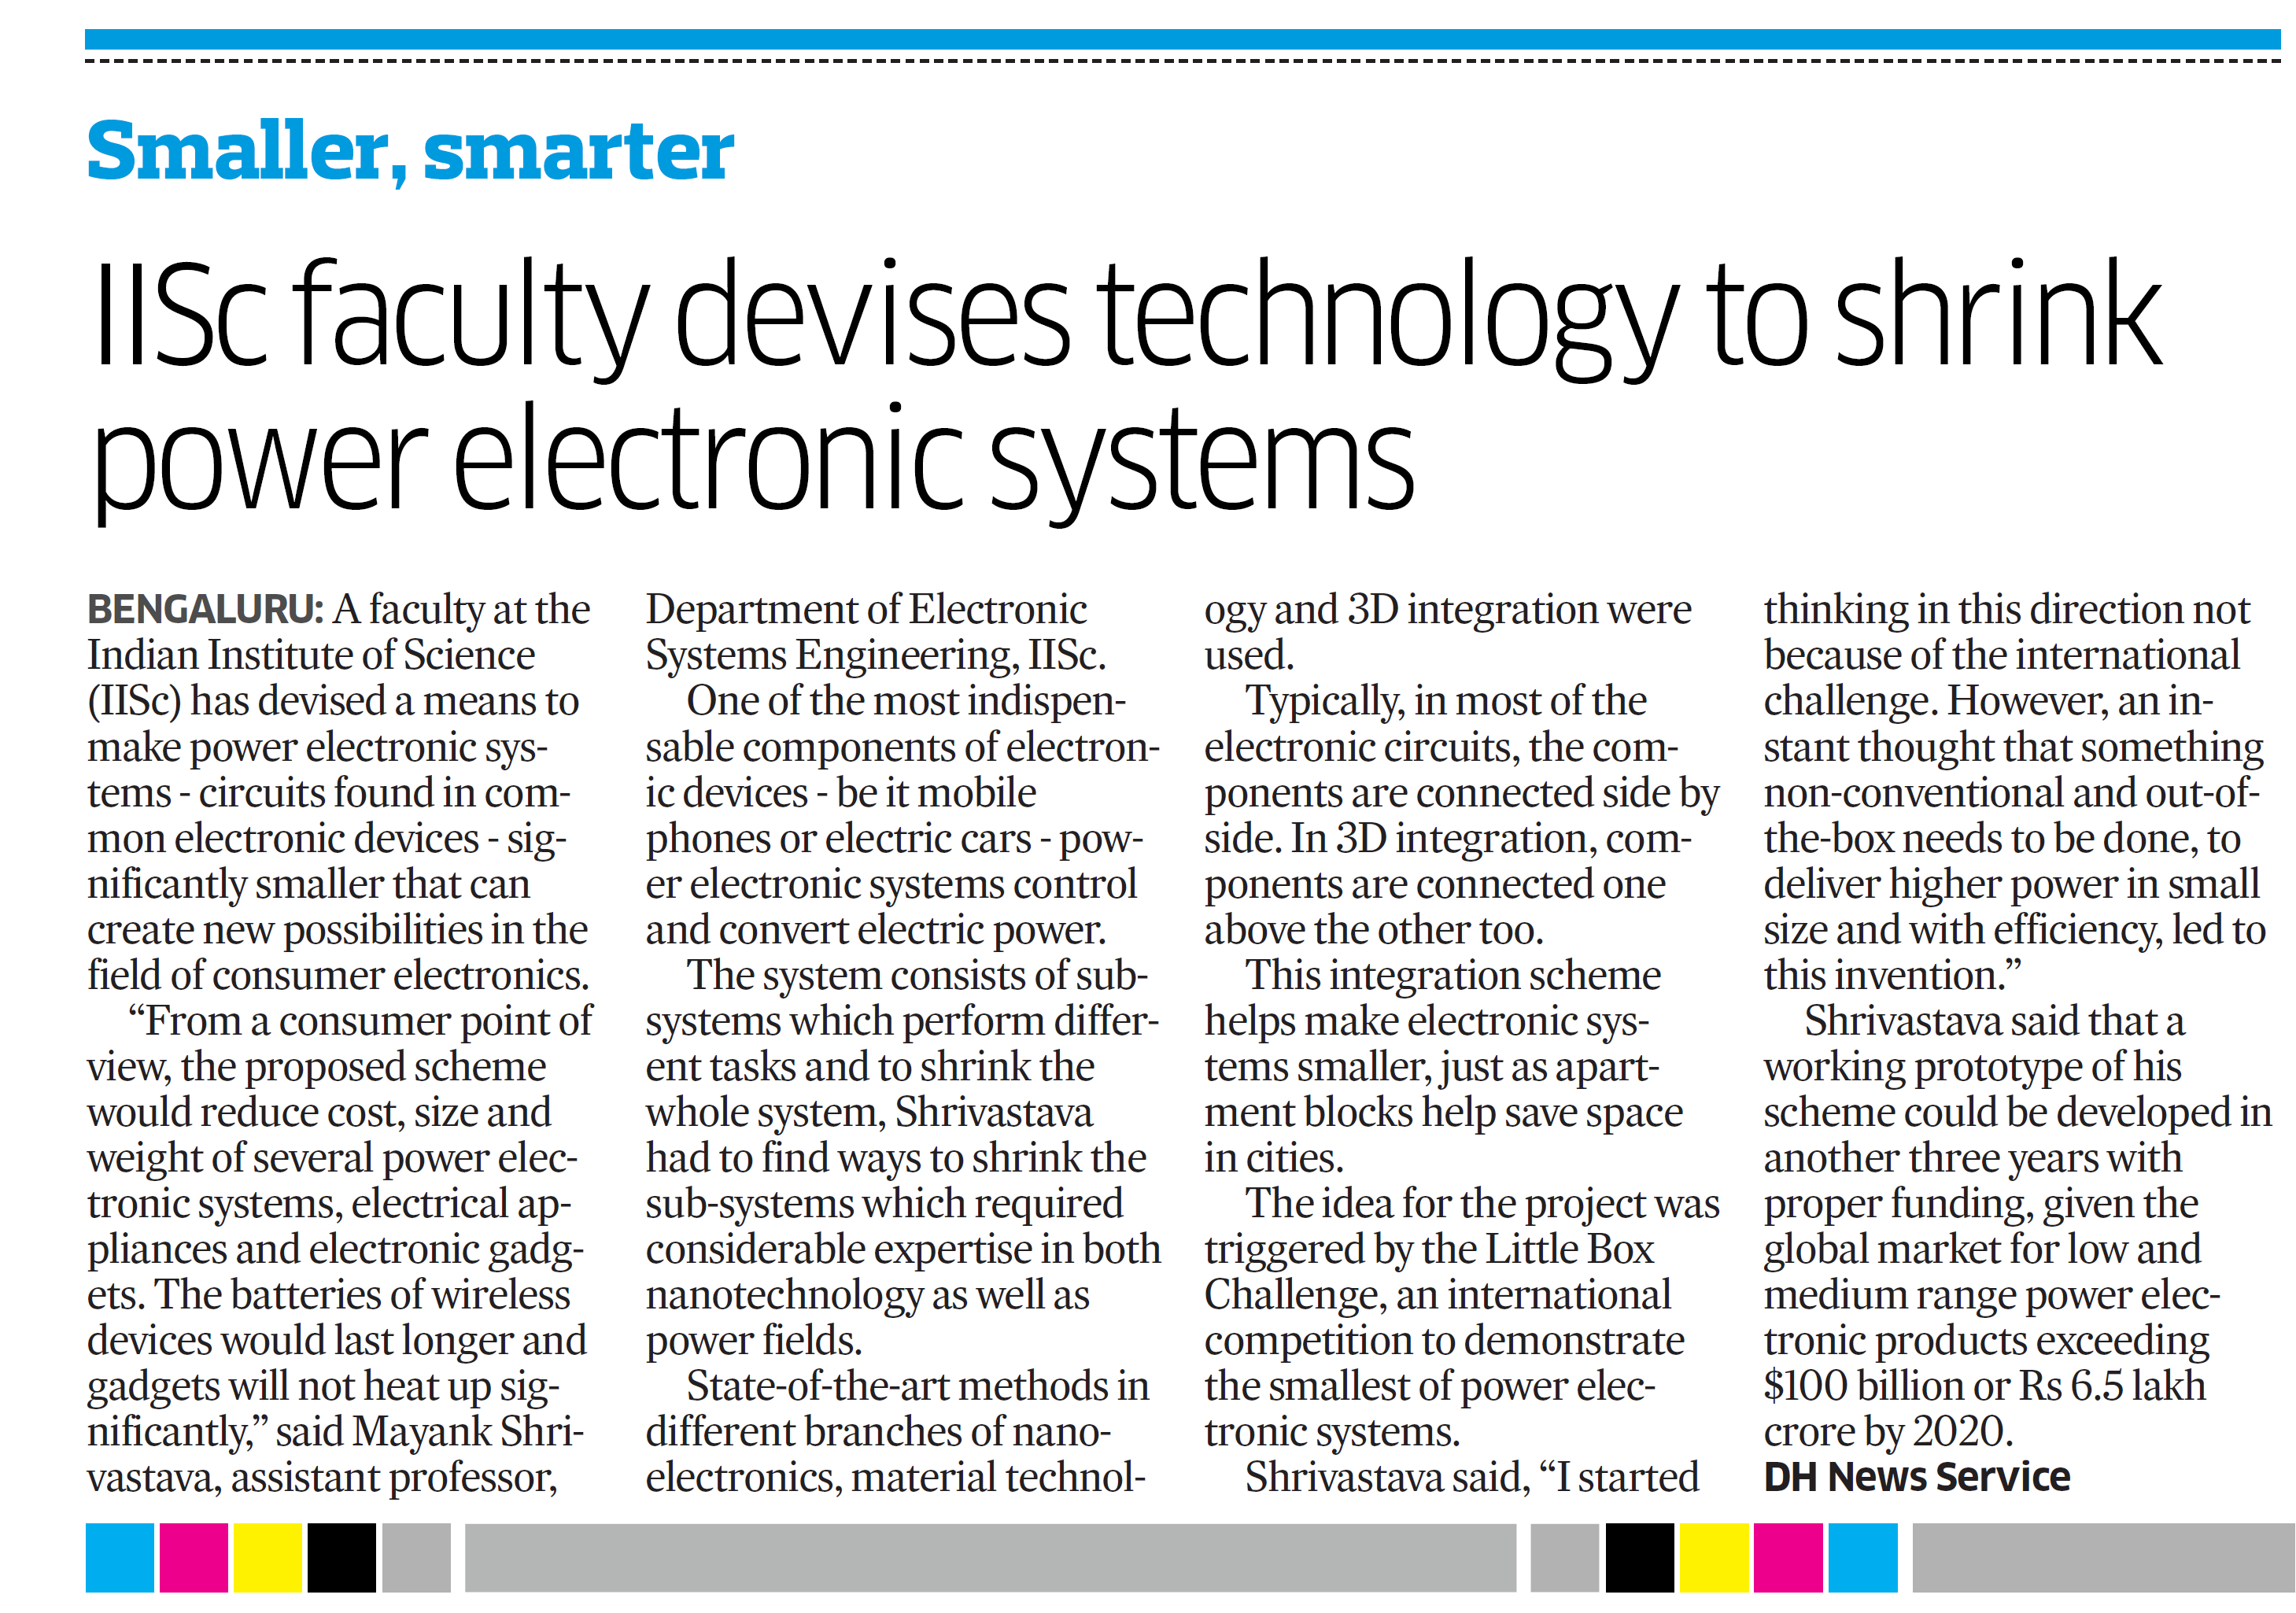 Mayanks Home Page Buy Online Lm555 Timer Ic At Low Cost In India From Dna Technology Iisc Faculty Devises To Shrink Power Elec Sys Deccan Herald